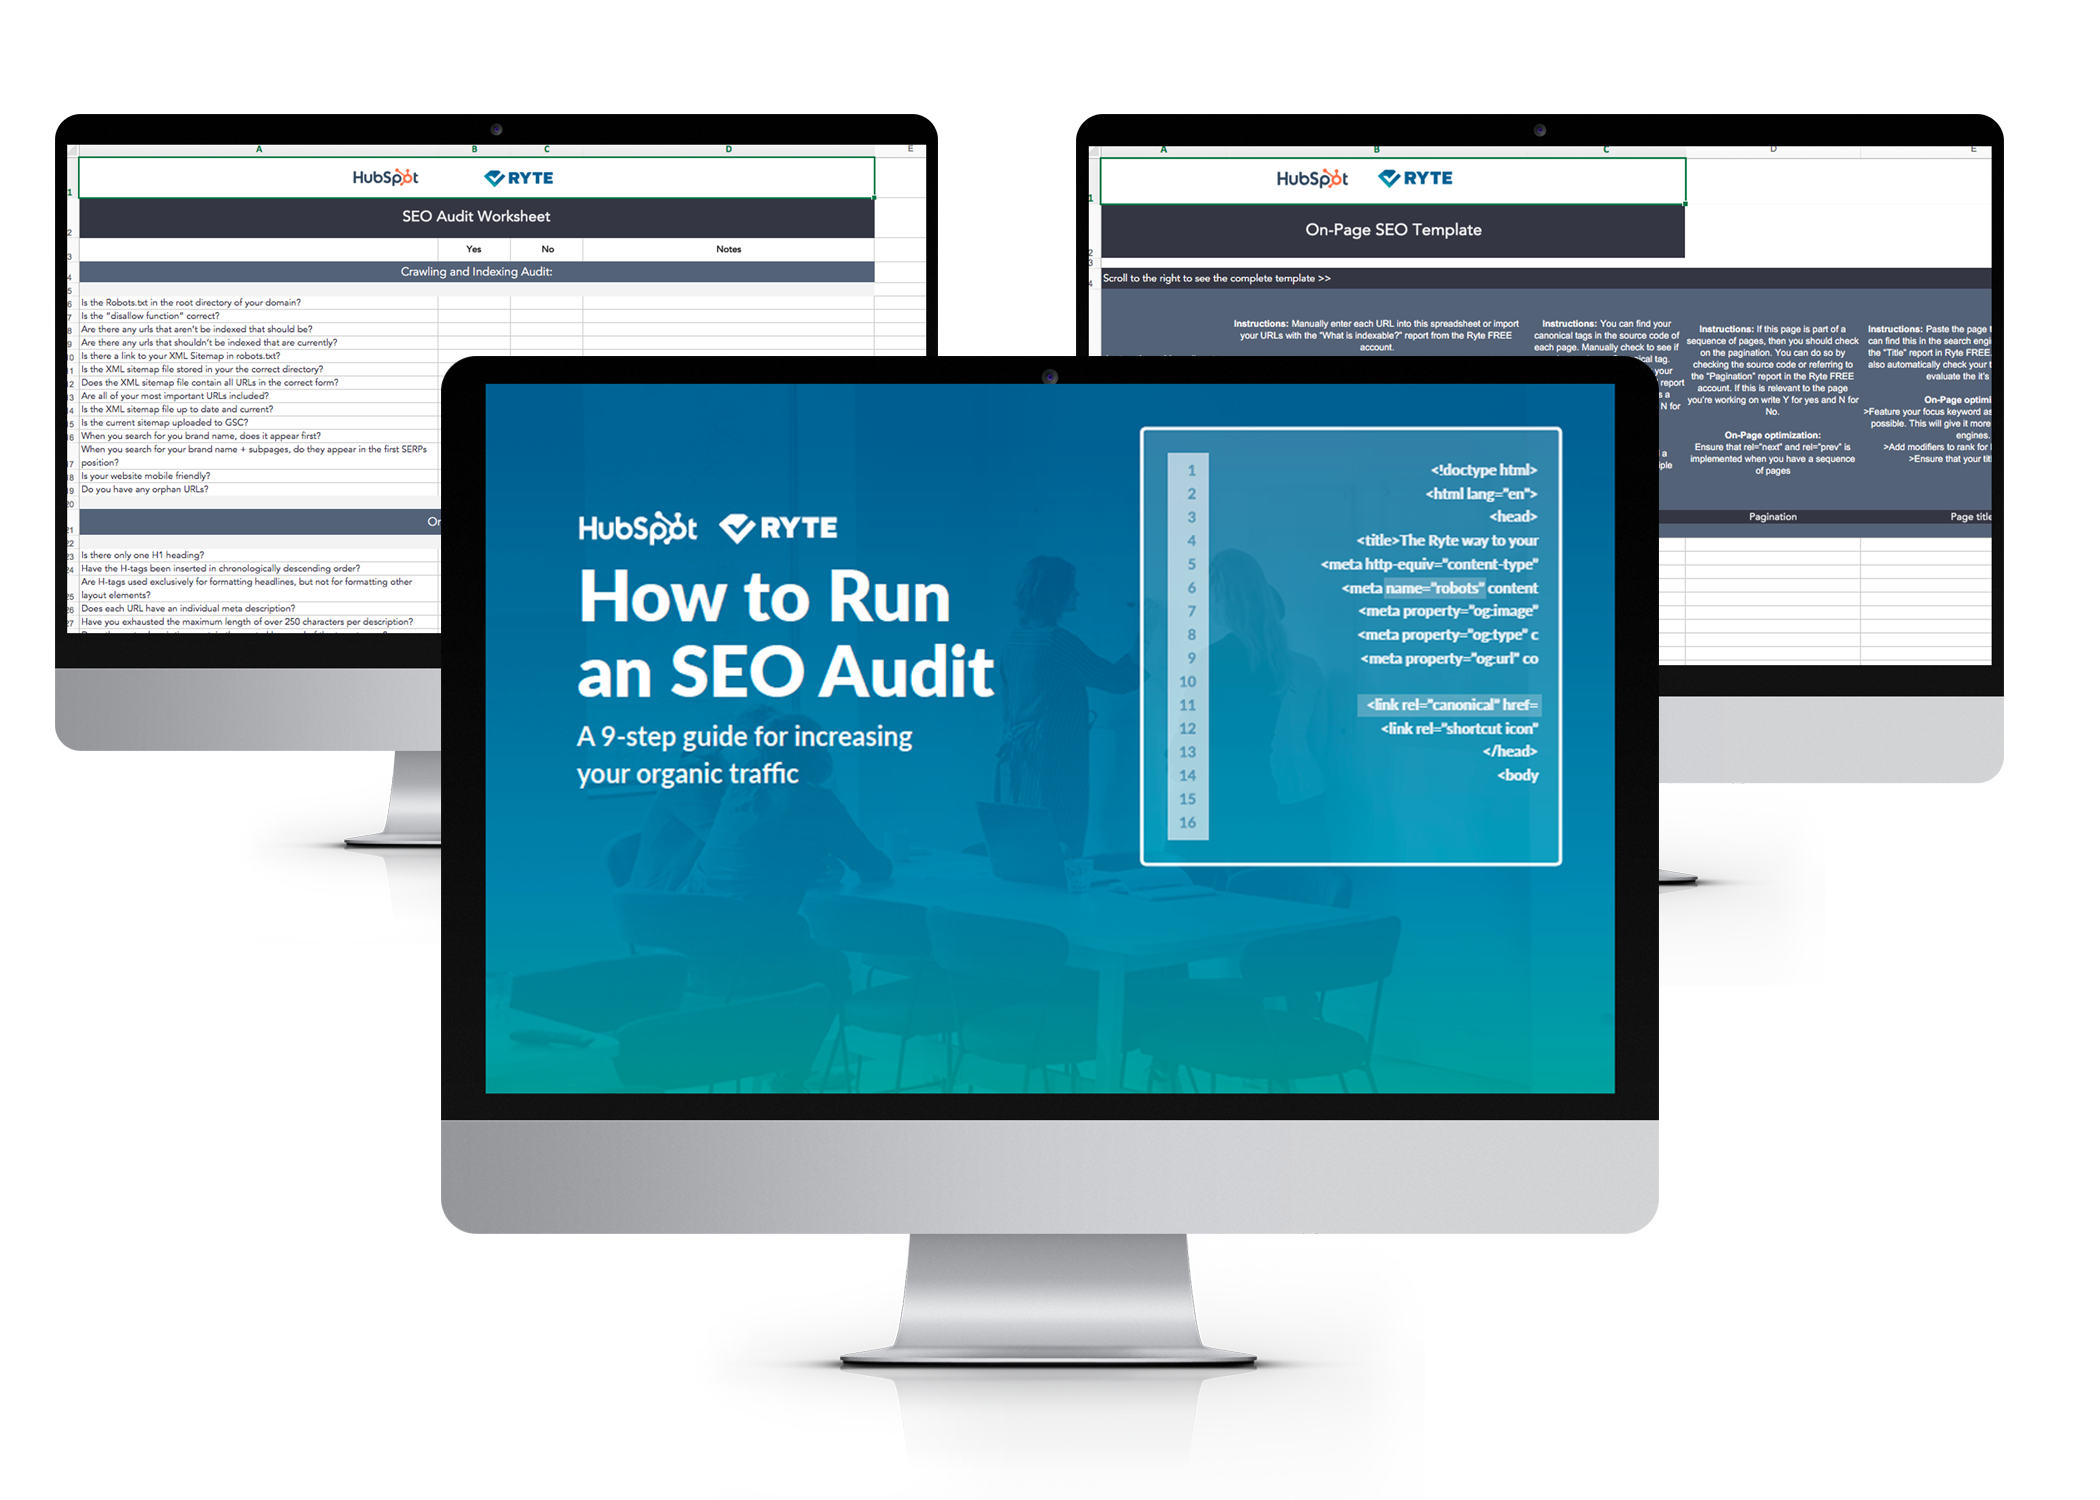 How to Run an SEO Audit [Free Kit]